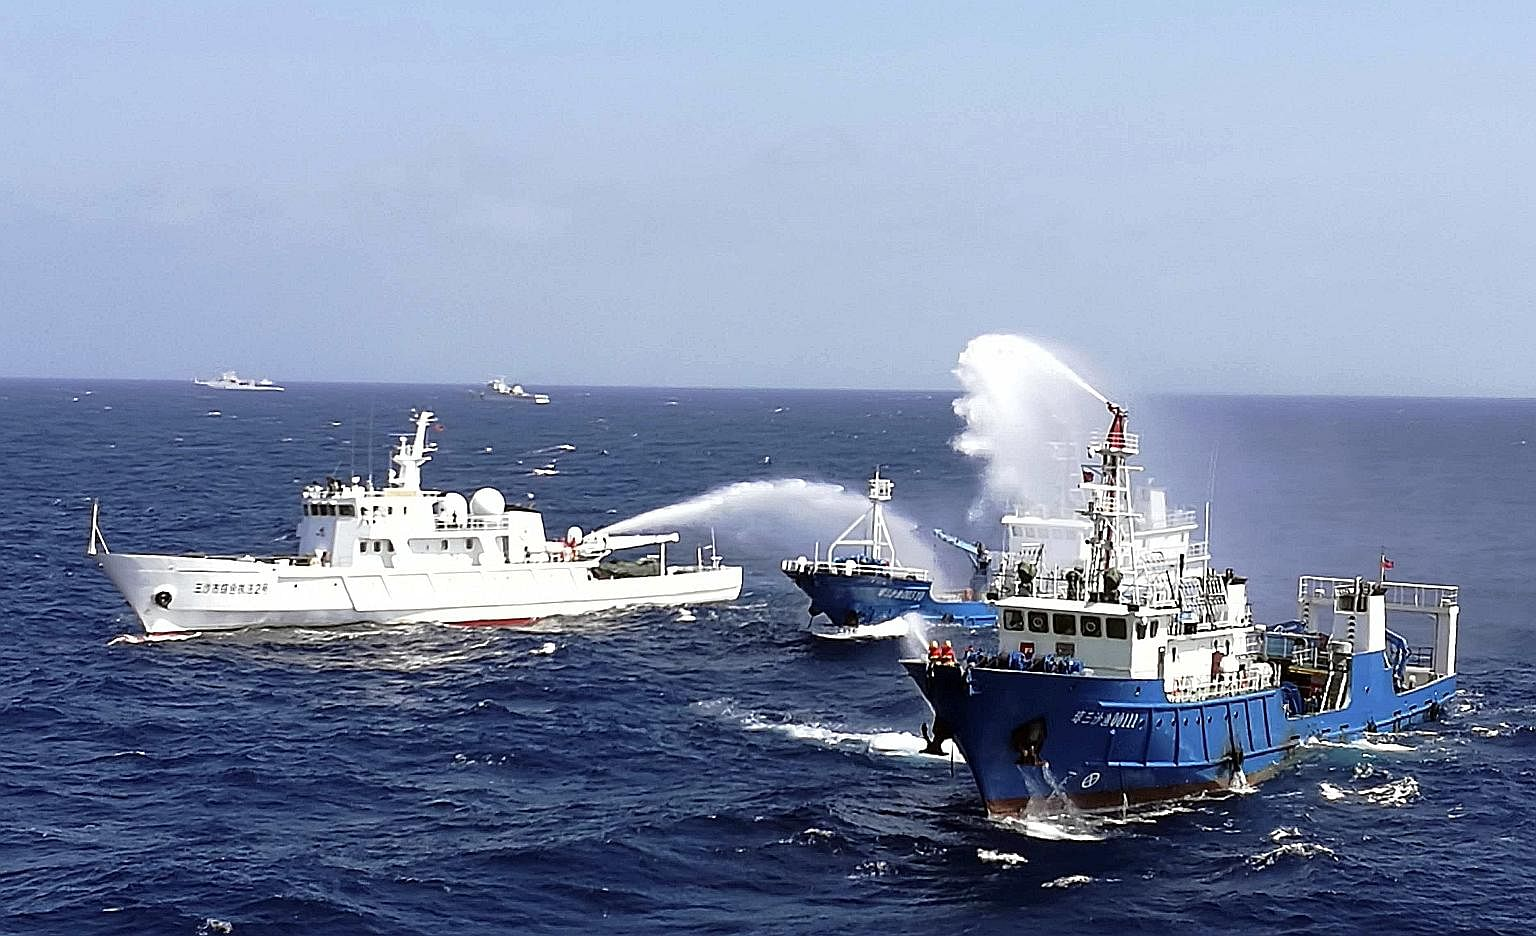 Chinese ships put out a fire on a cargo vessel during a drill in the South China Sea near Hainan province last month. China warned then that it would respond decisively to provocations in the South China Sea, as it faced mounting pressure to accept a